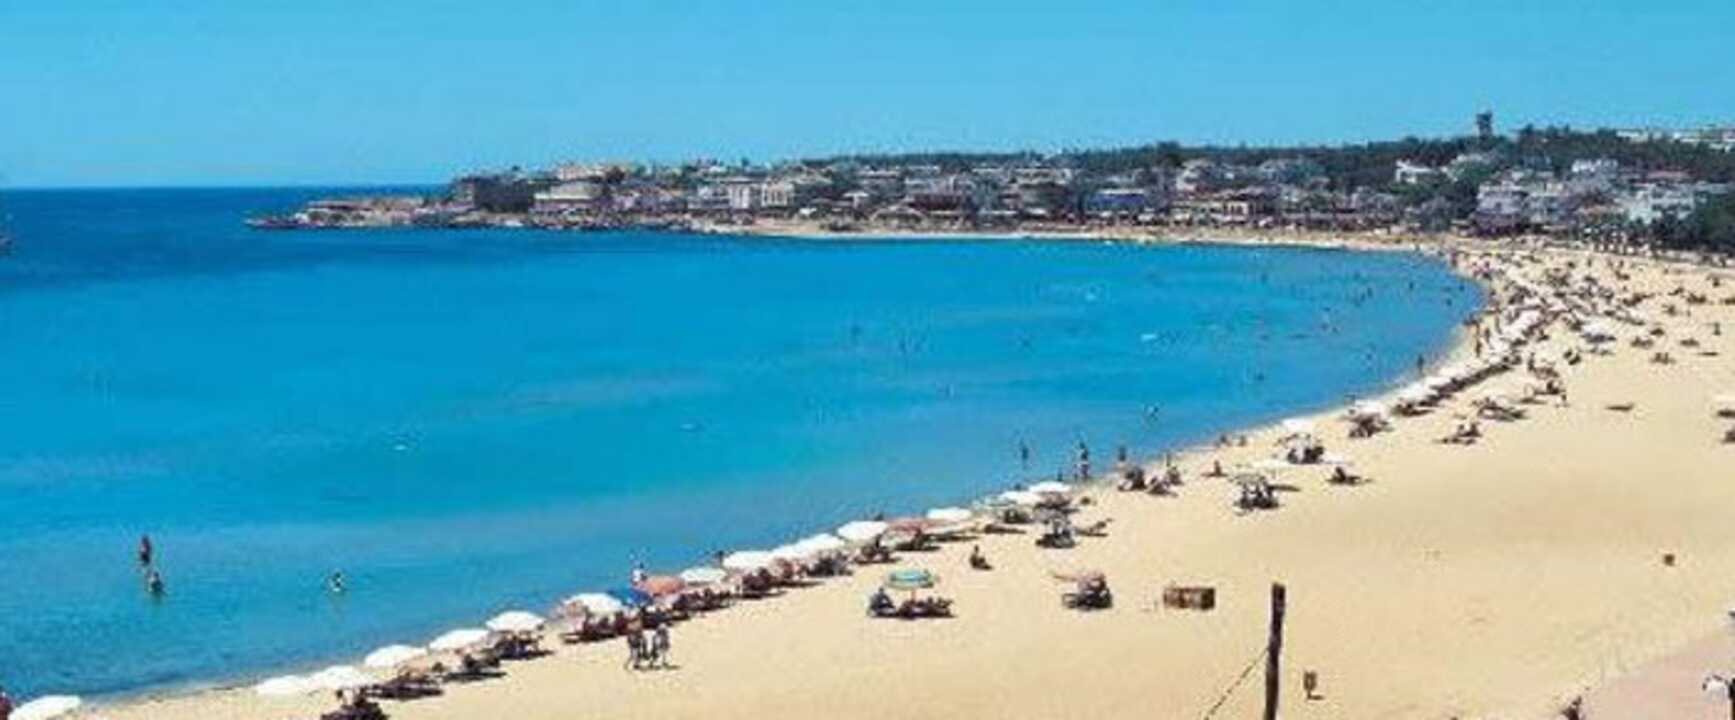 Cheap Holidays To Altinkum On The Beach